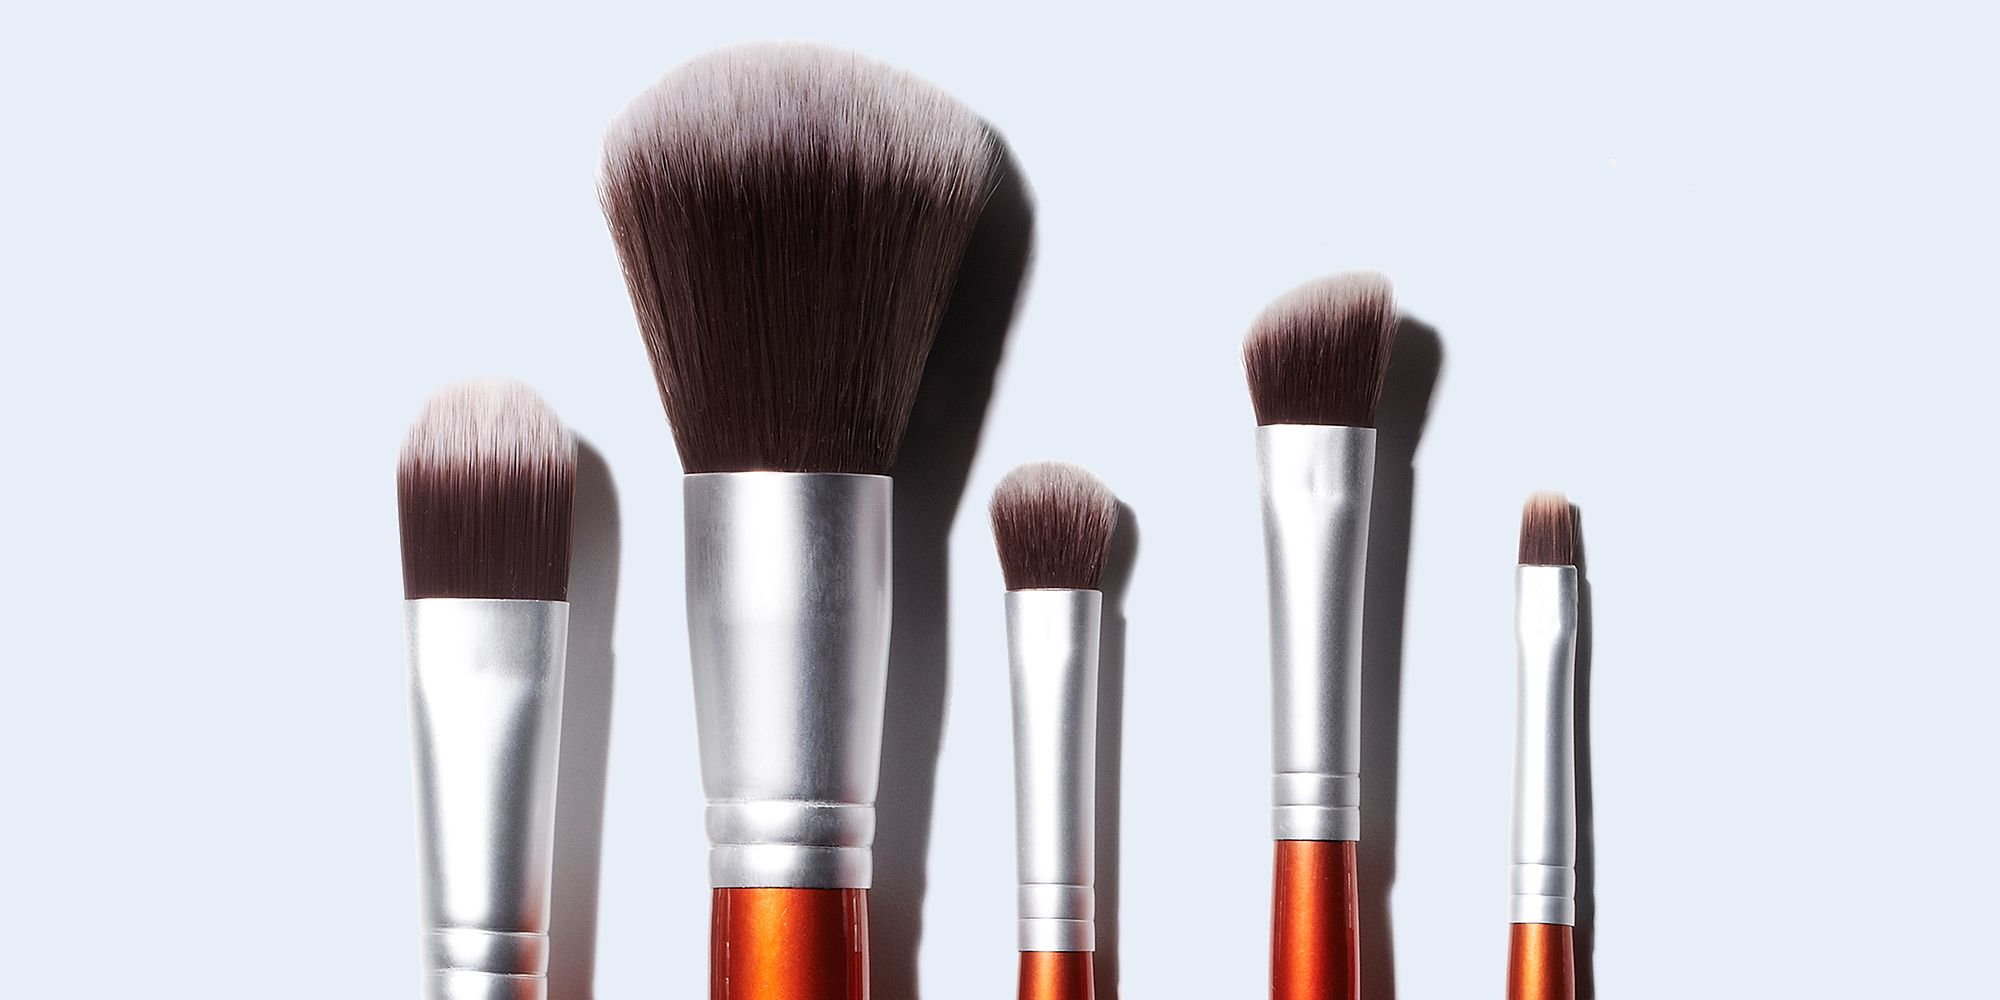 How to Clean Makeup Brushes - How Often